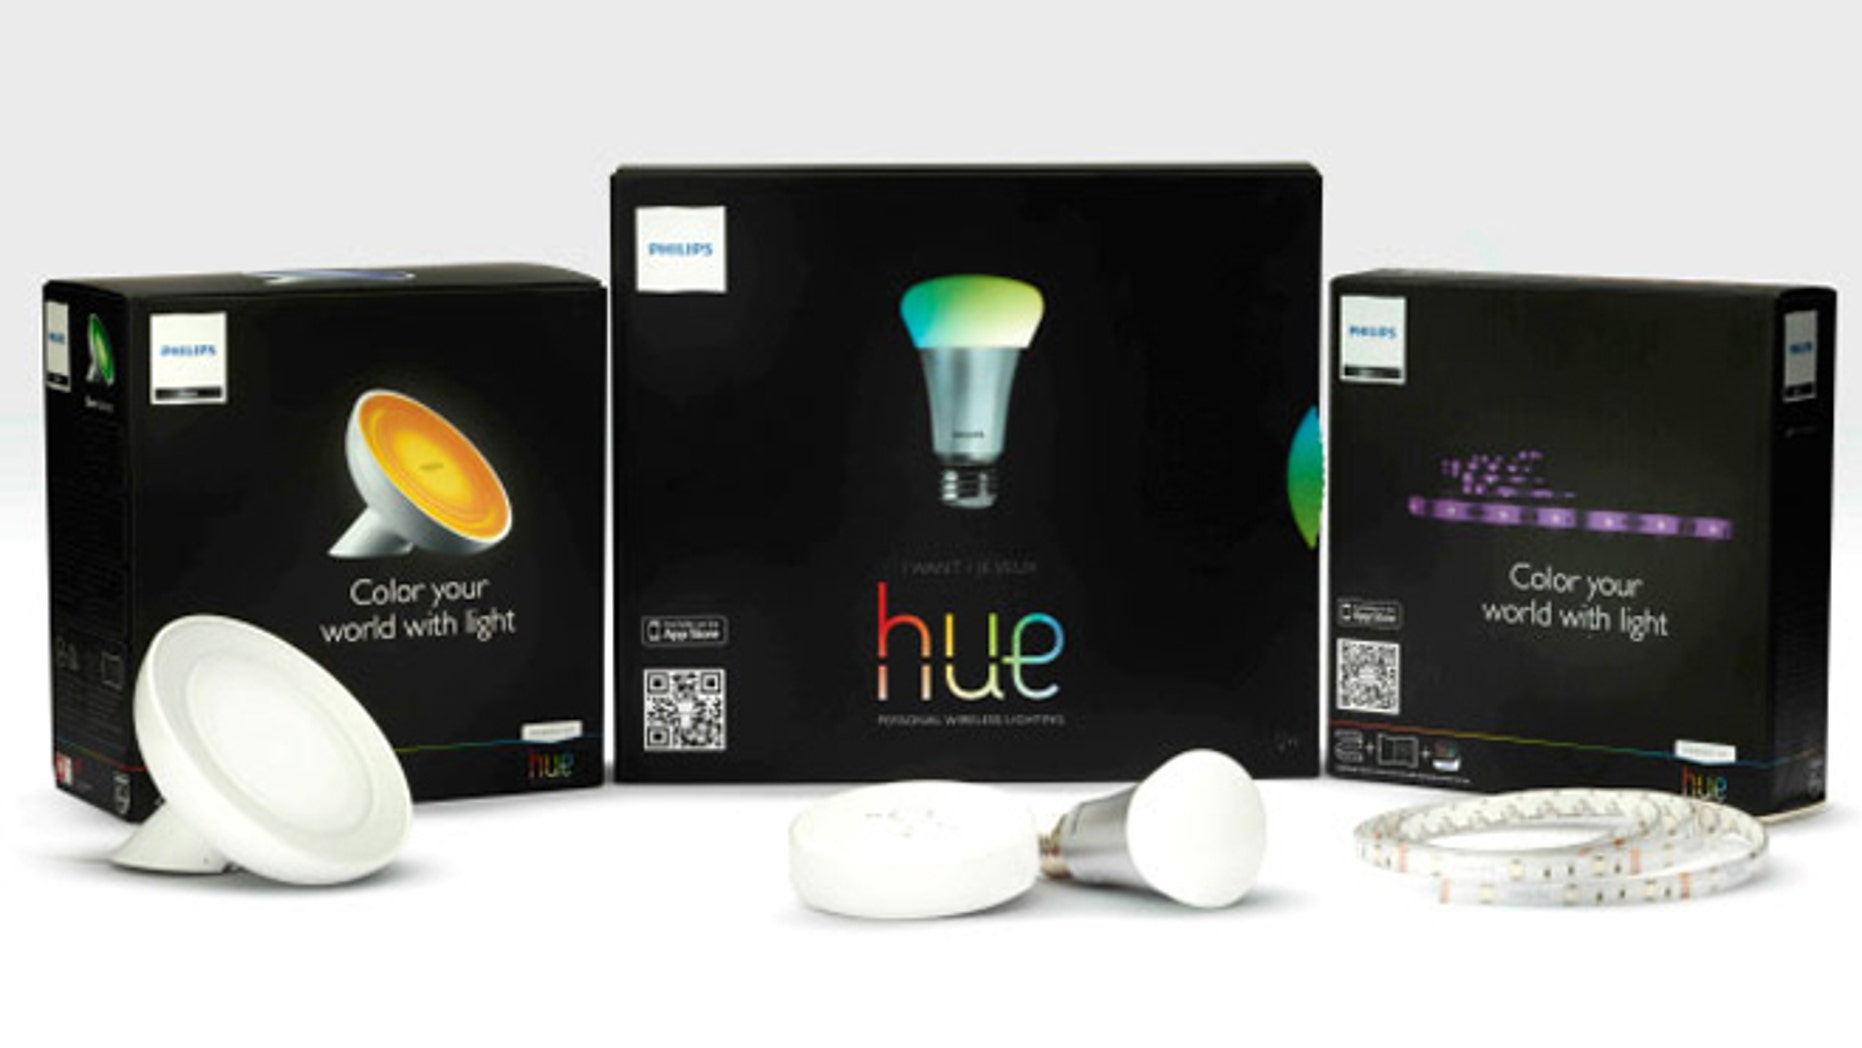 The Philips Hue, a line of tunable LED lightbulbs that can be controlled via smartphone.